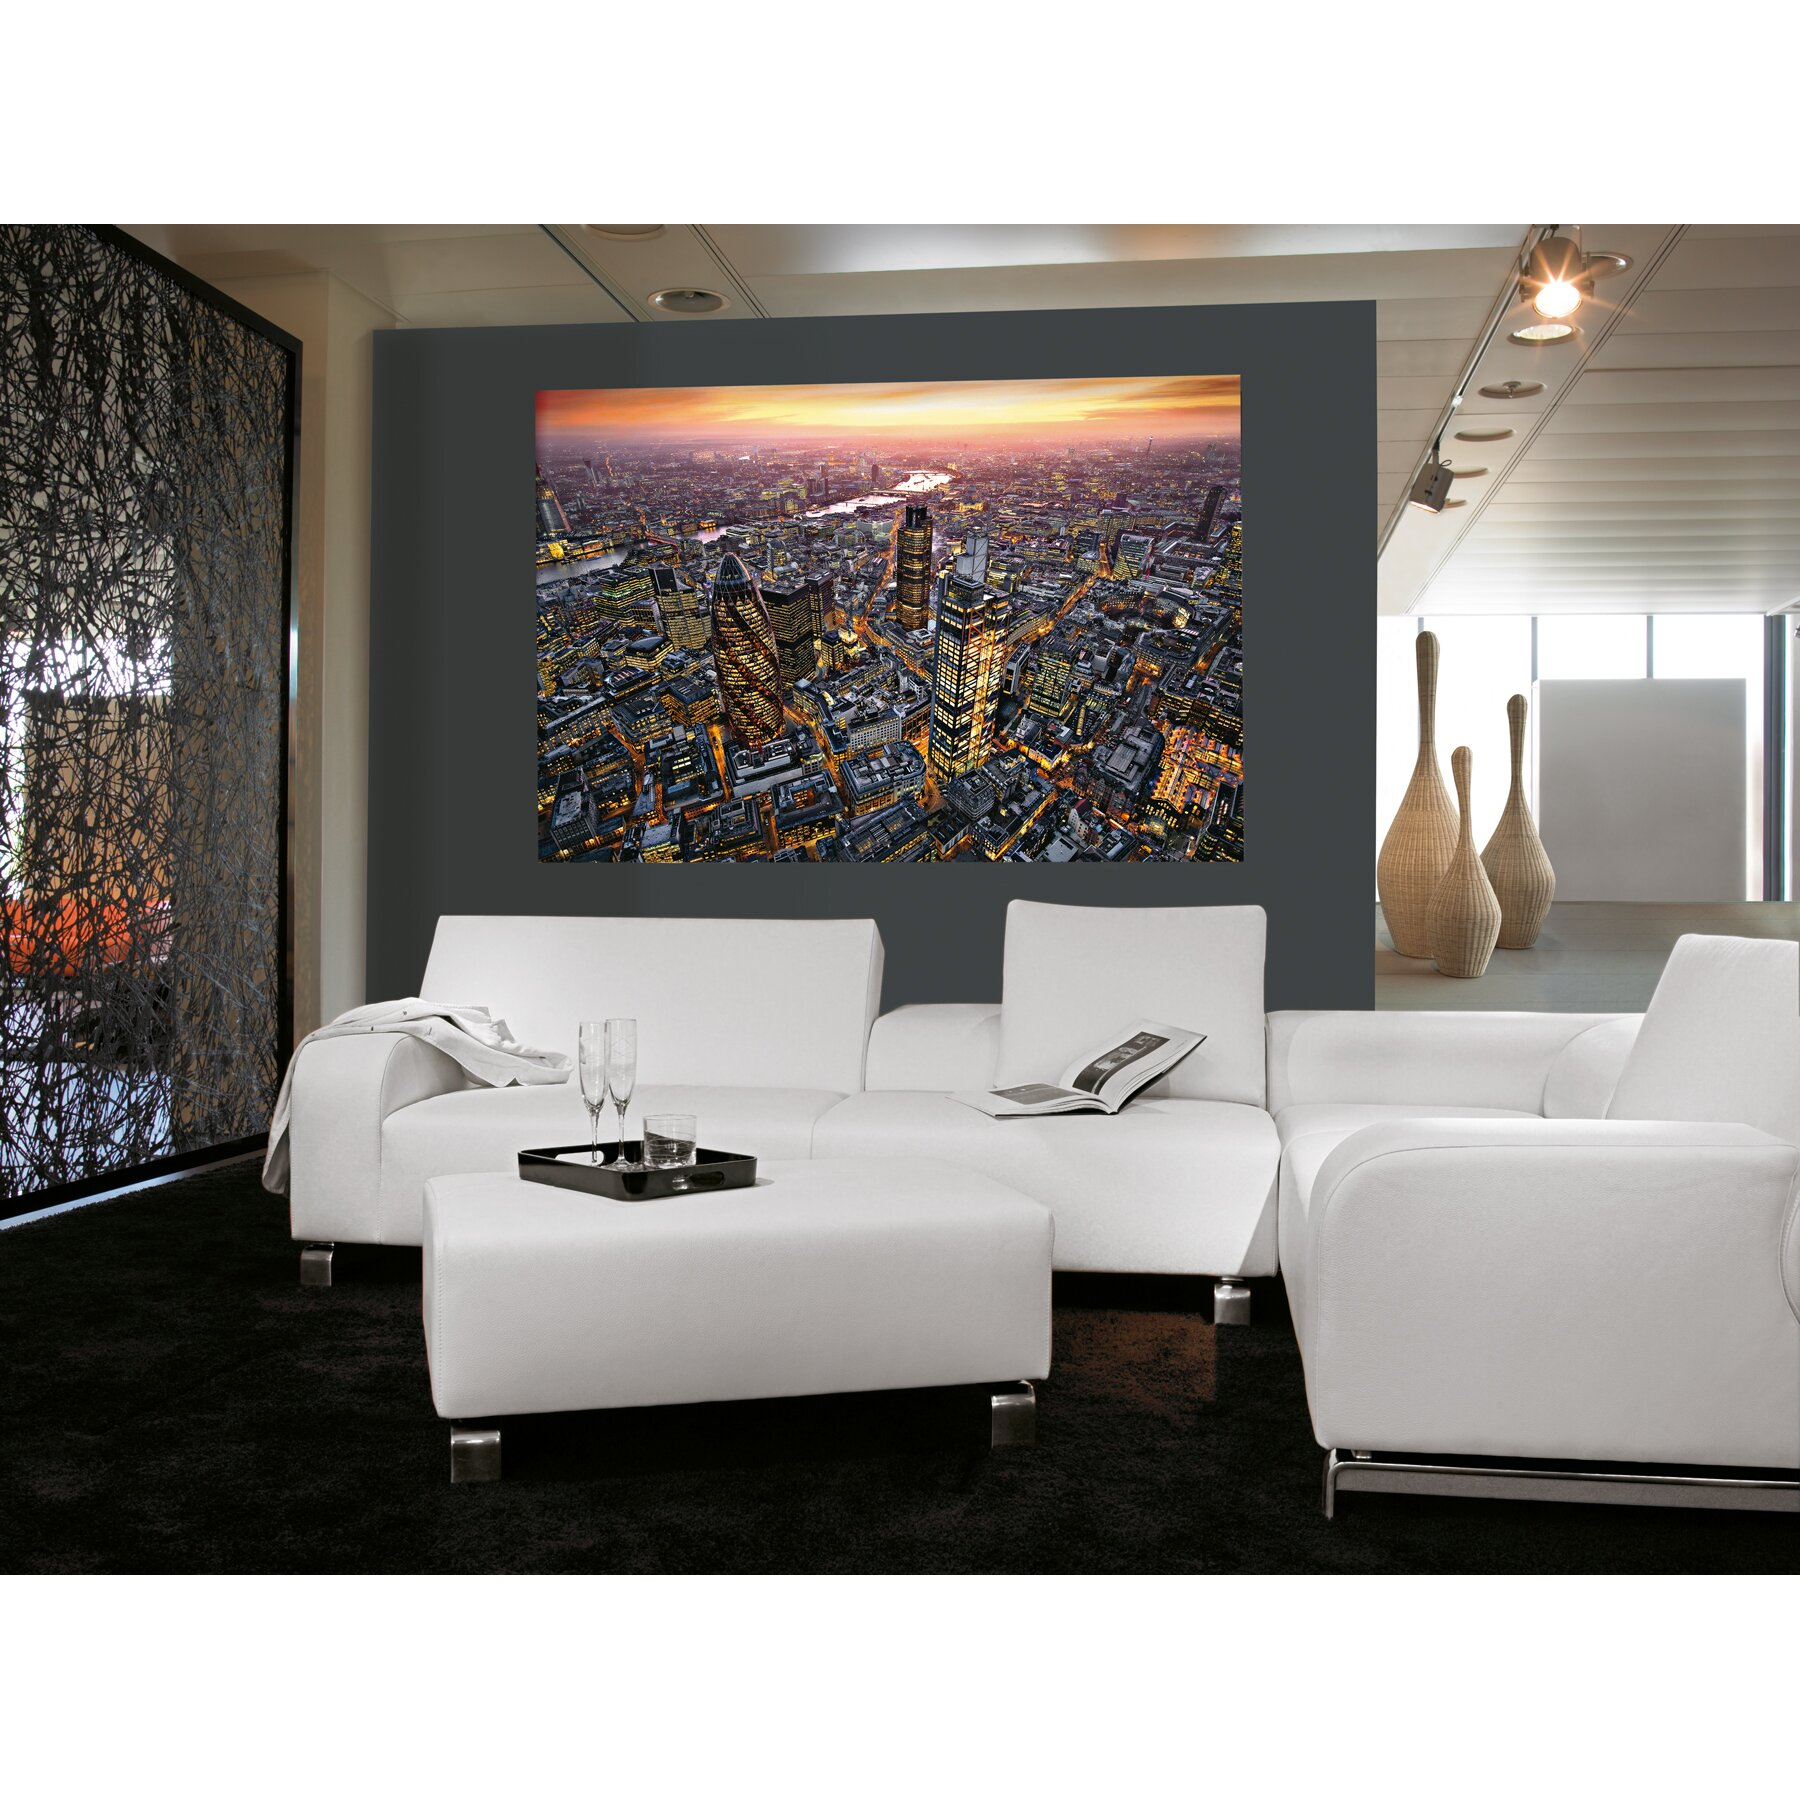 Ideal decor london aerial wall mural wayfair for Home decorations london